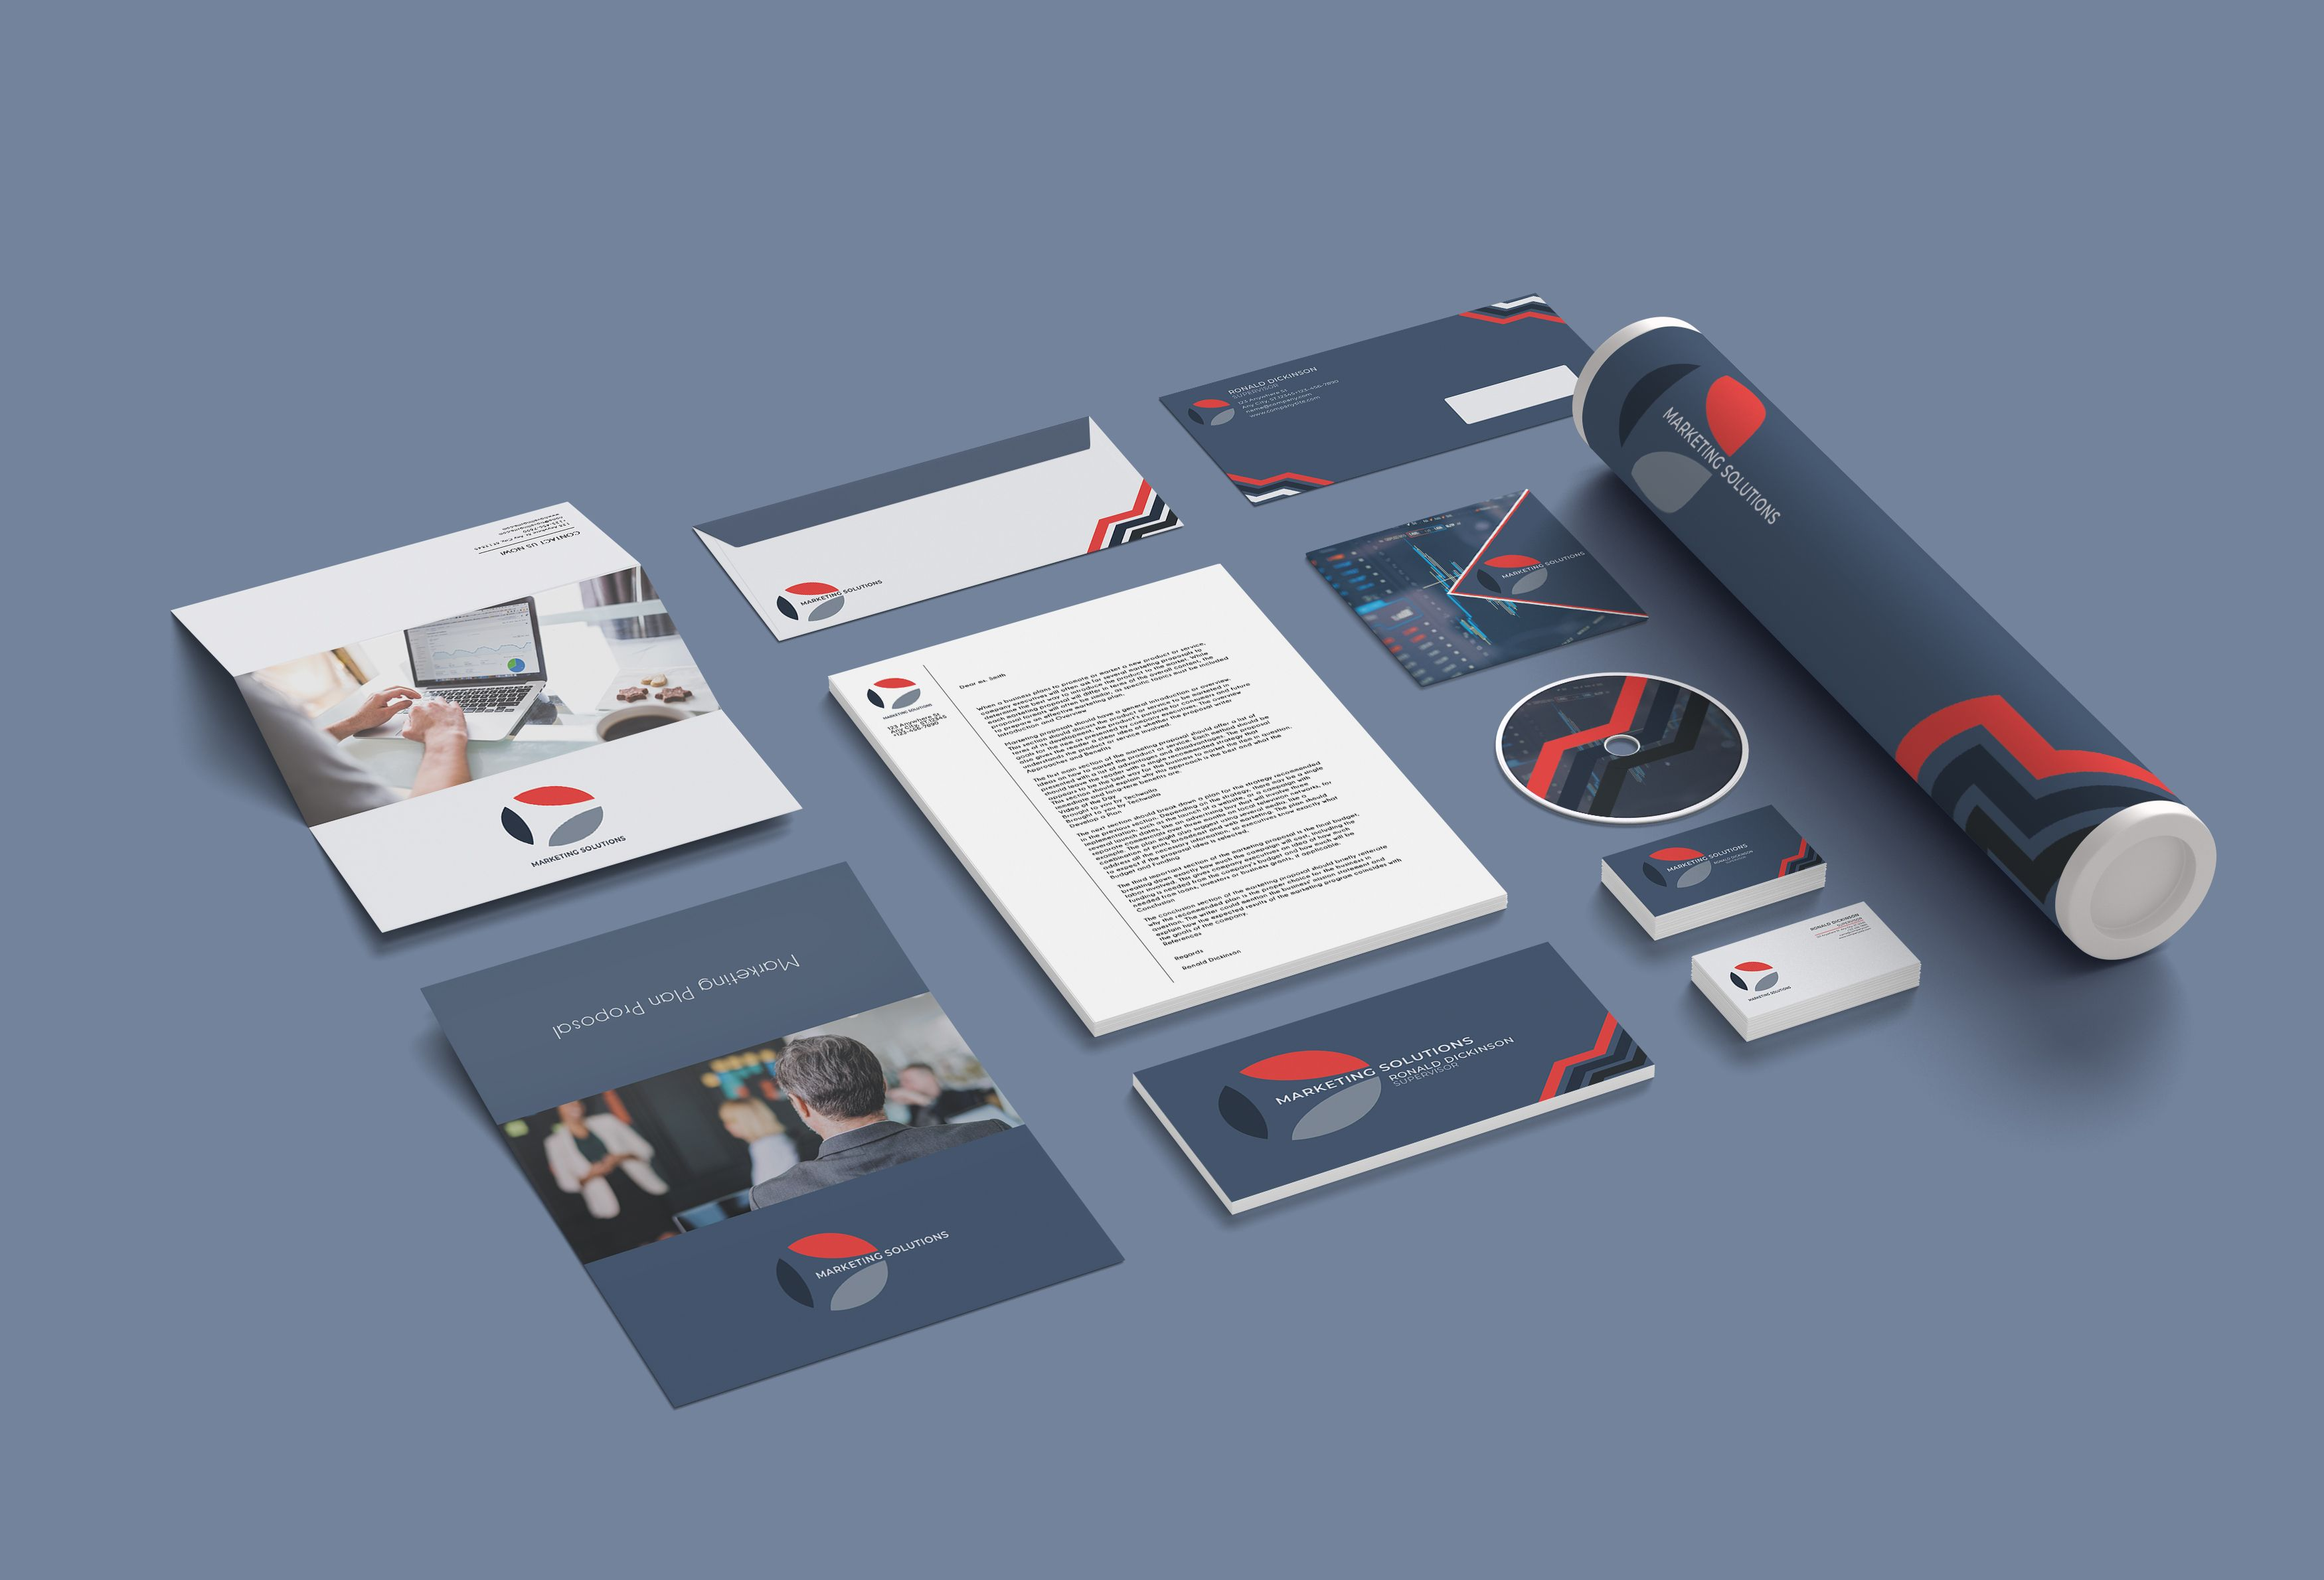 Marketing Branding Identity - 15  Print Templates Screenshot 5